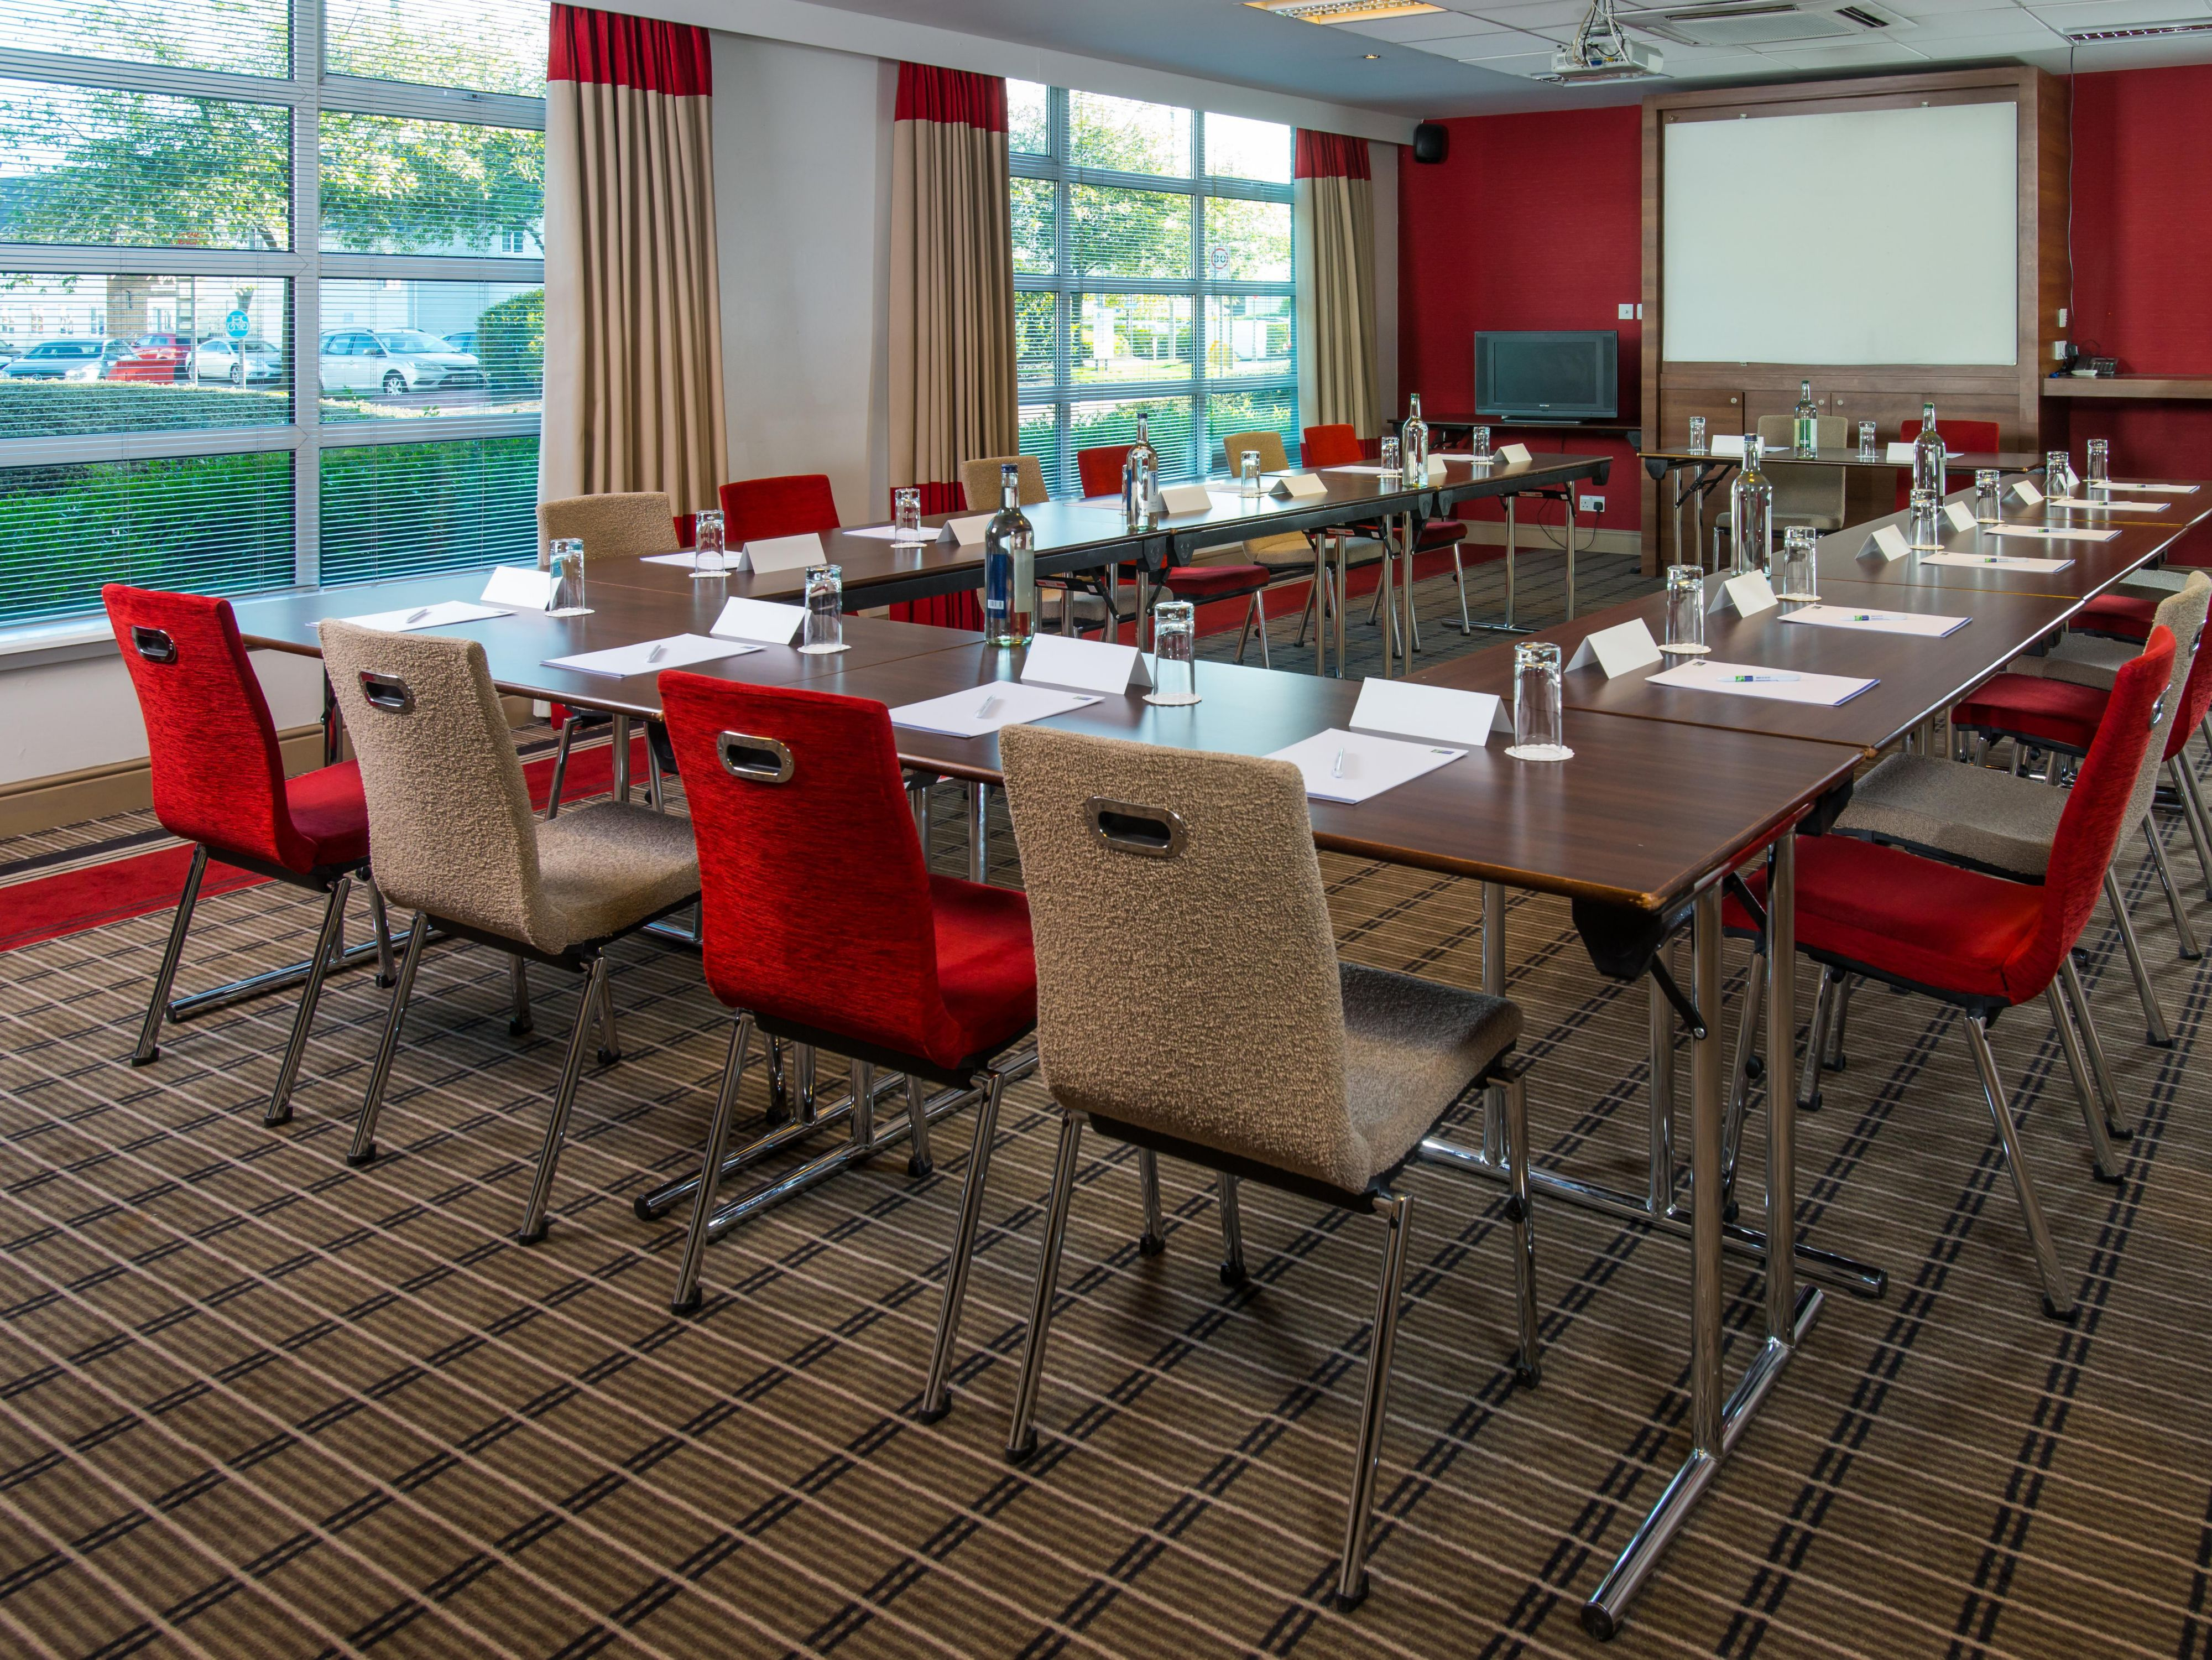 We can accommodate up to 70 delegates in our Saltire Room